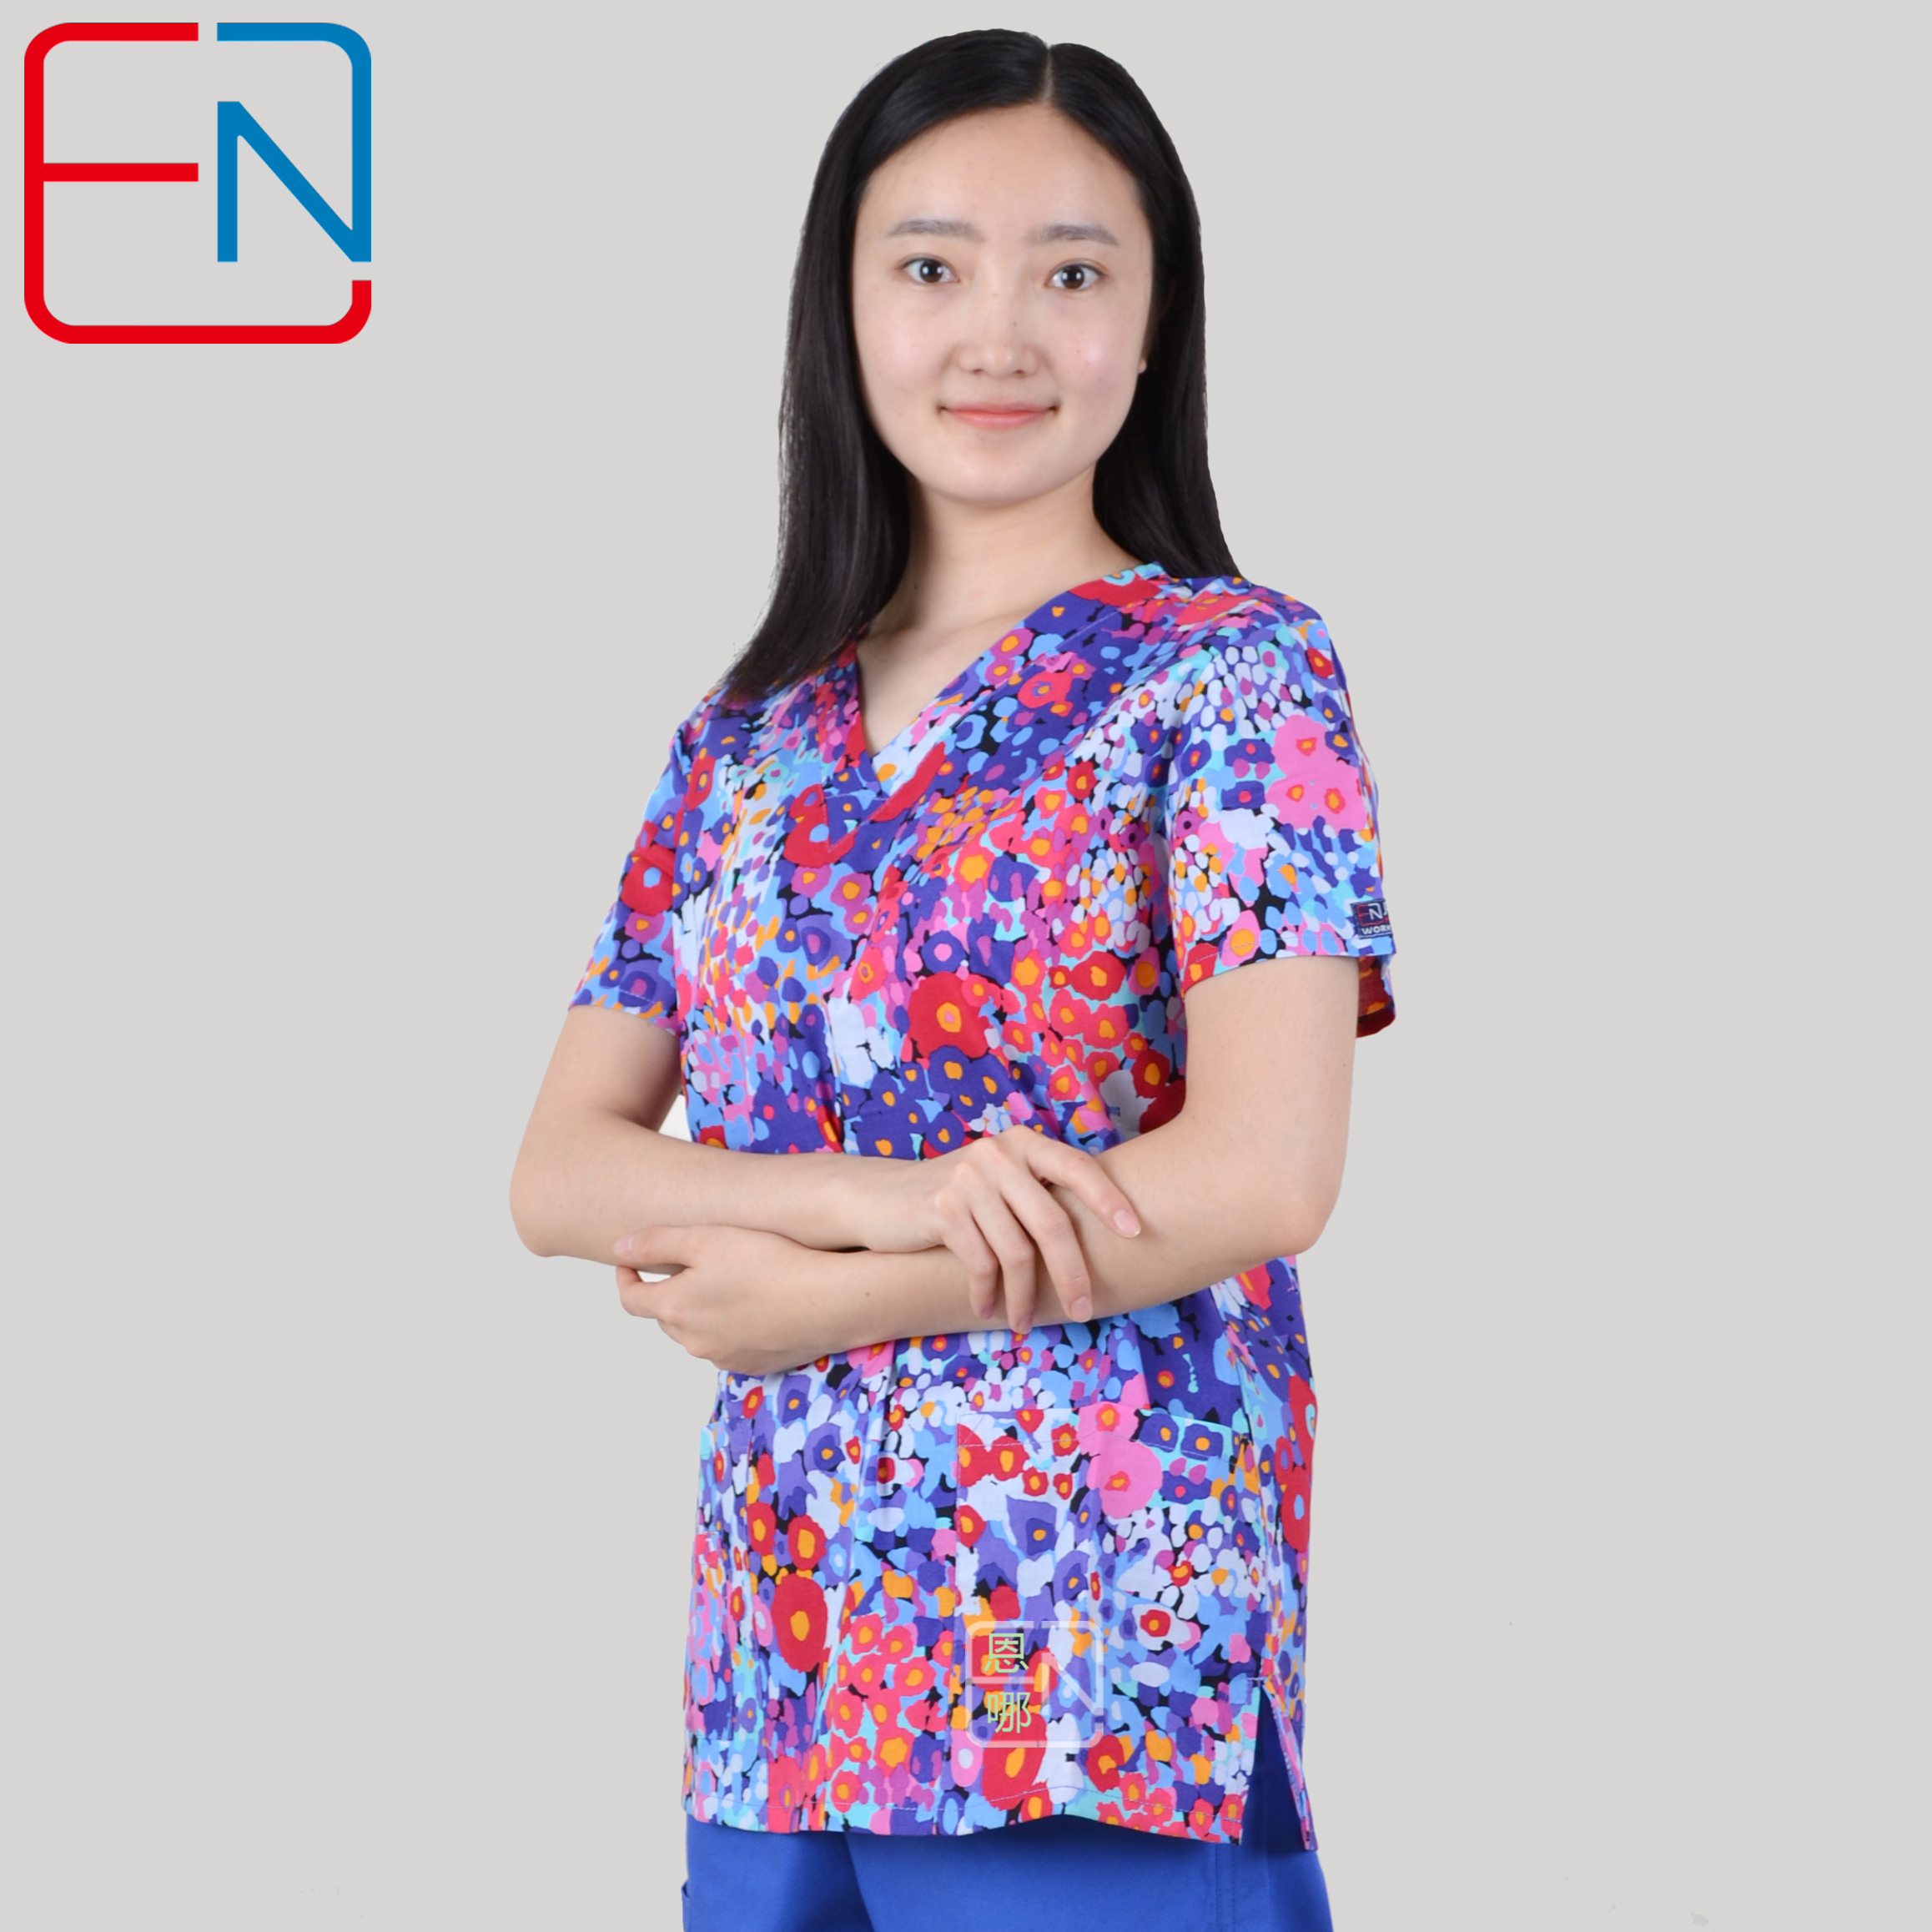 Hennar Hennar Medical Uniforms For Women V-Neck 100% Cotton Surgical Scrubs Top Print Hospital Medical Nurse Scrub Tops